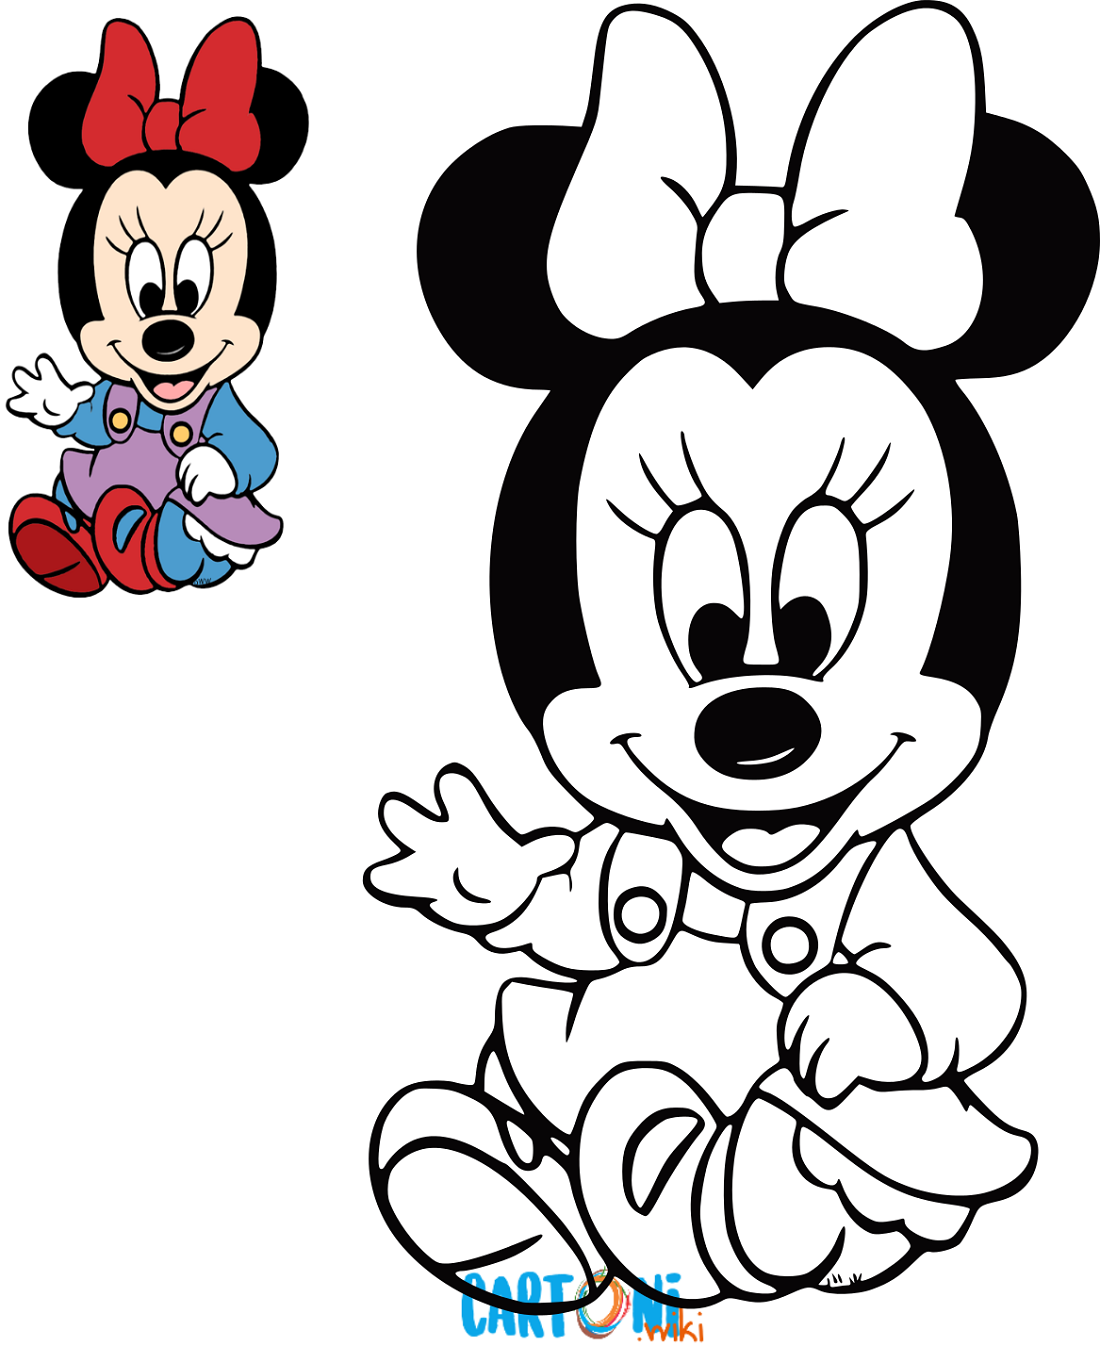 Cartoni Animati Baby Minnie Da Colorare E Stampare Per Far